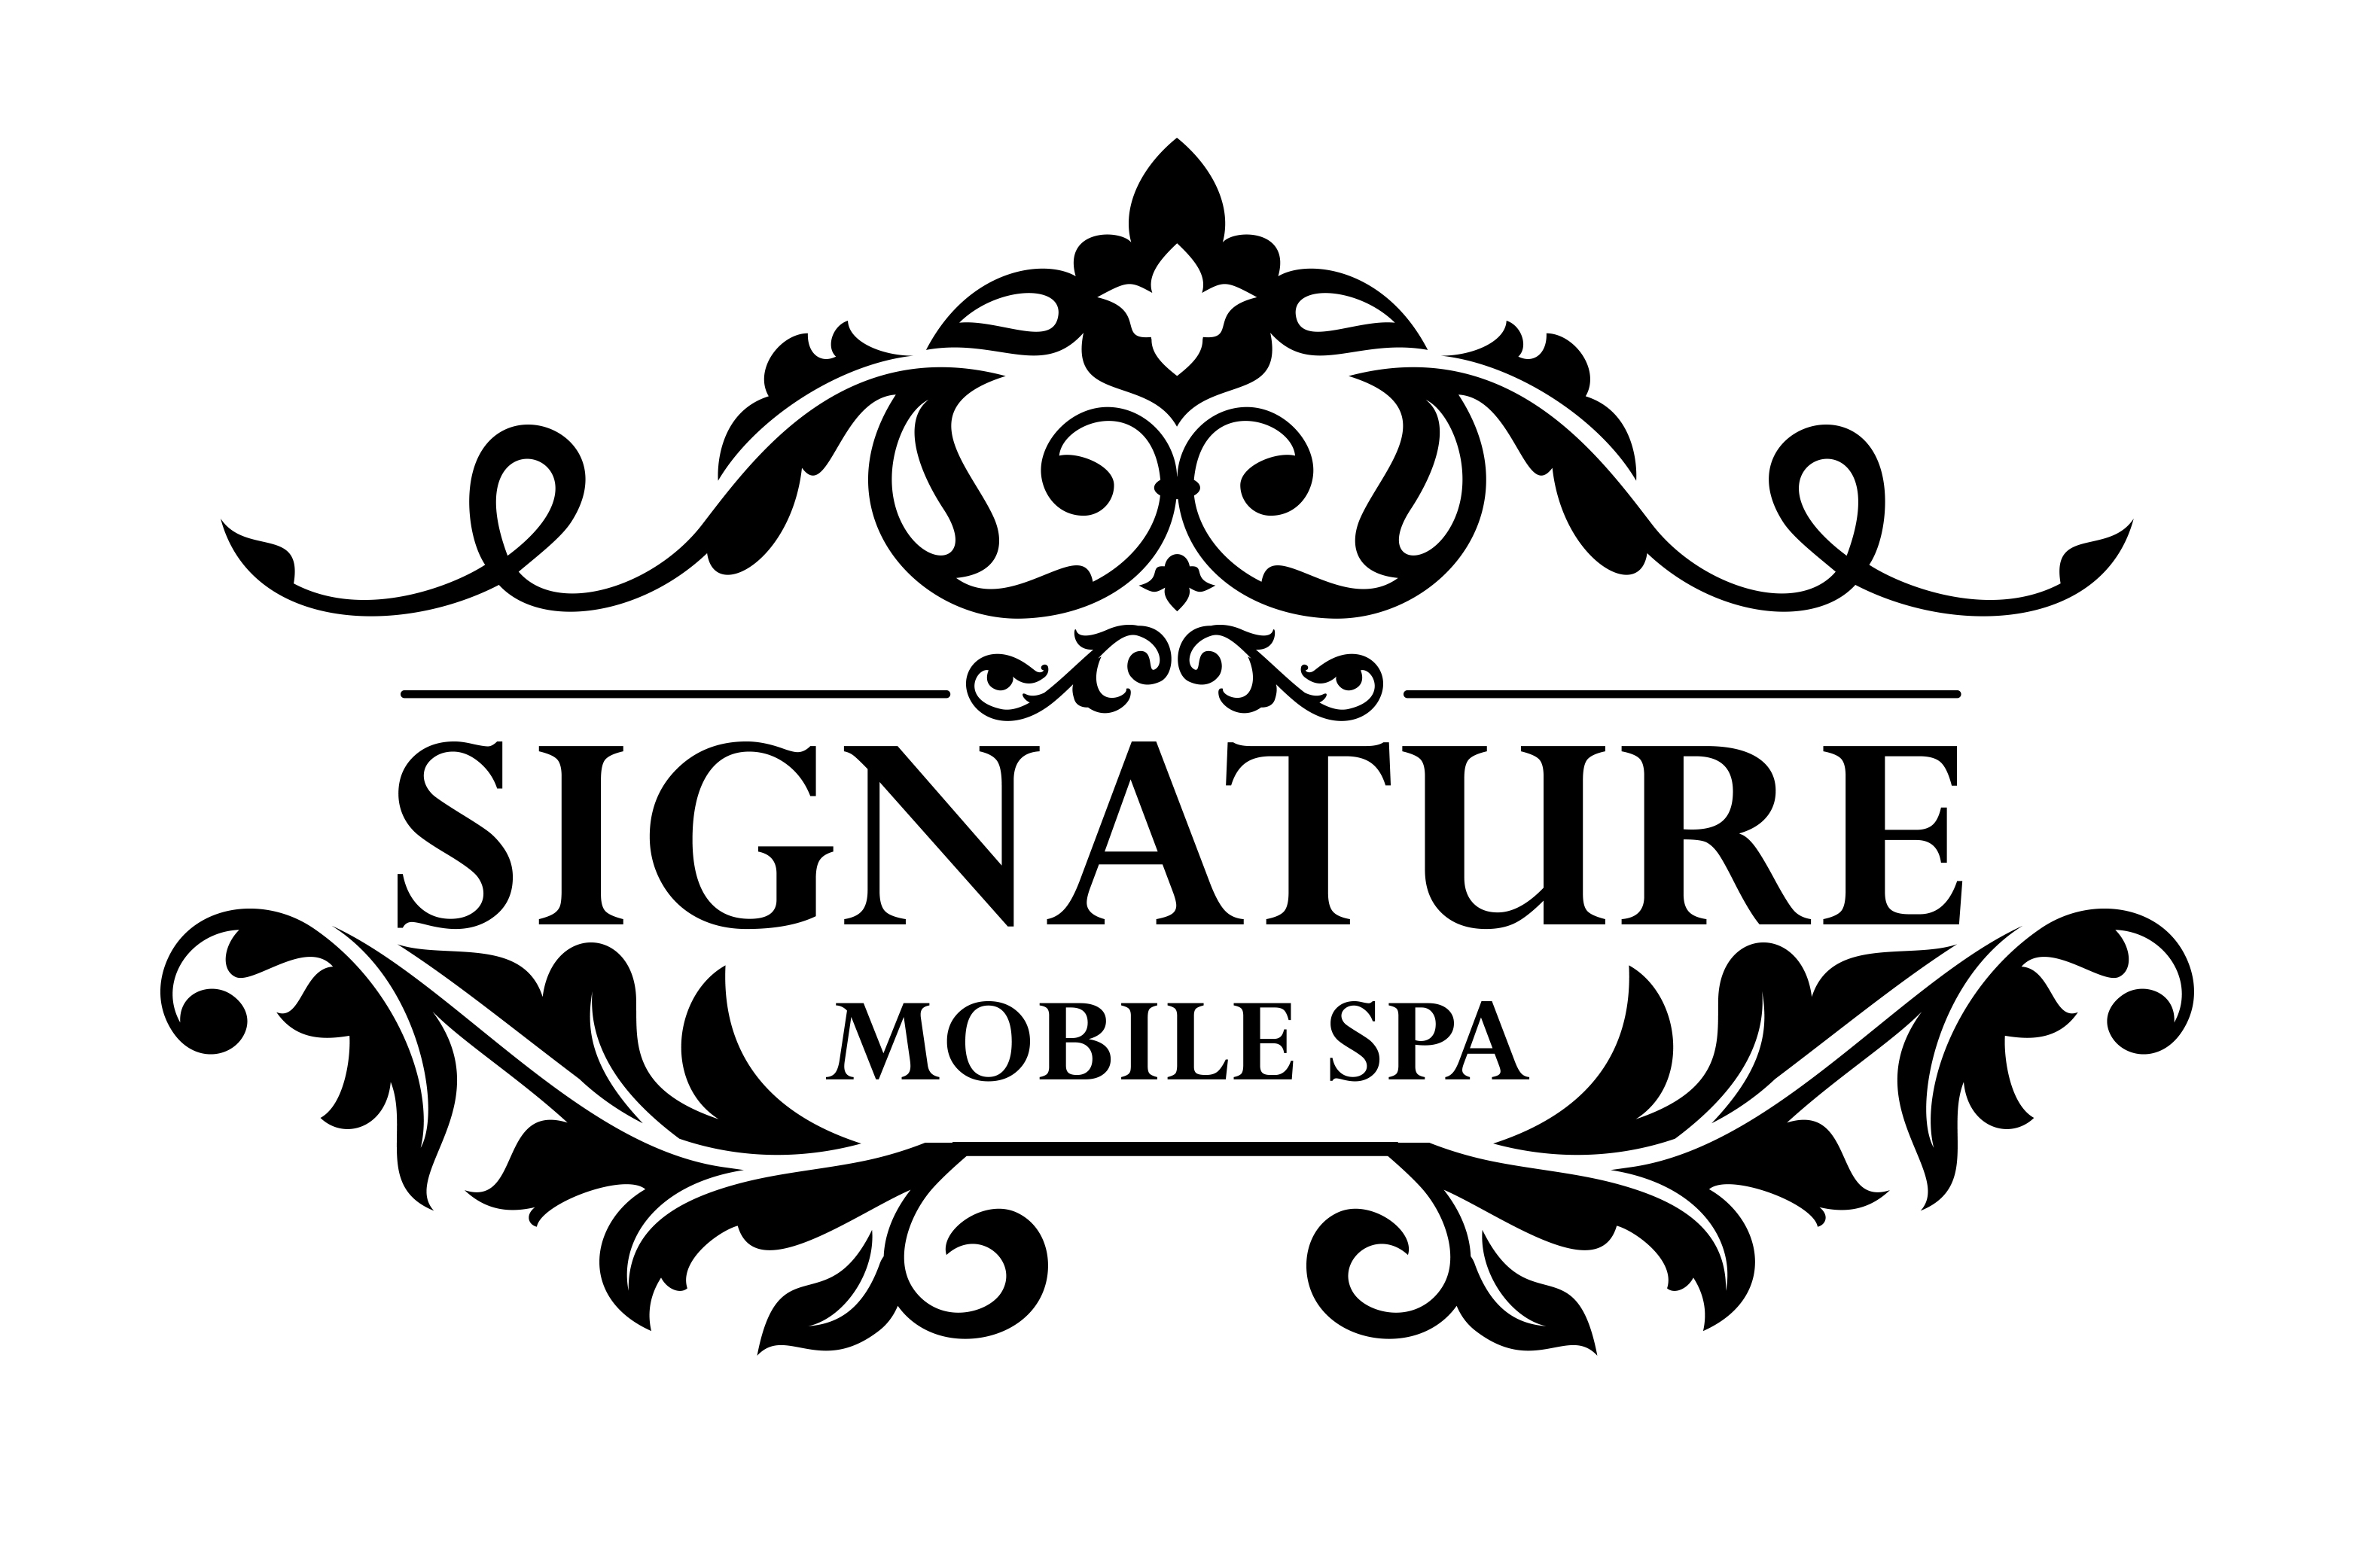 Signature Mobile Spa Launches their new logo, brand and website!